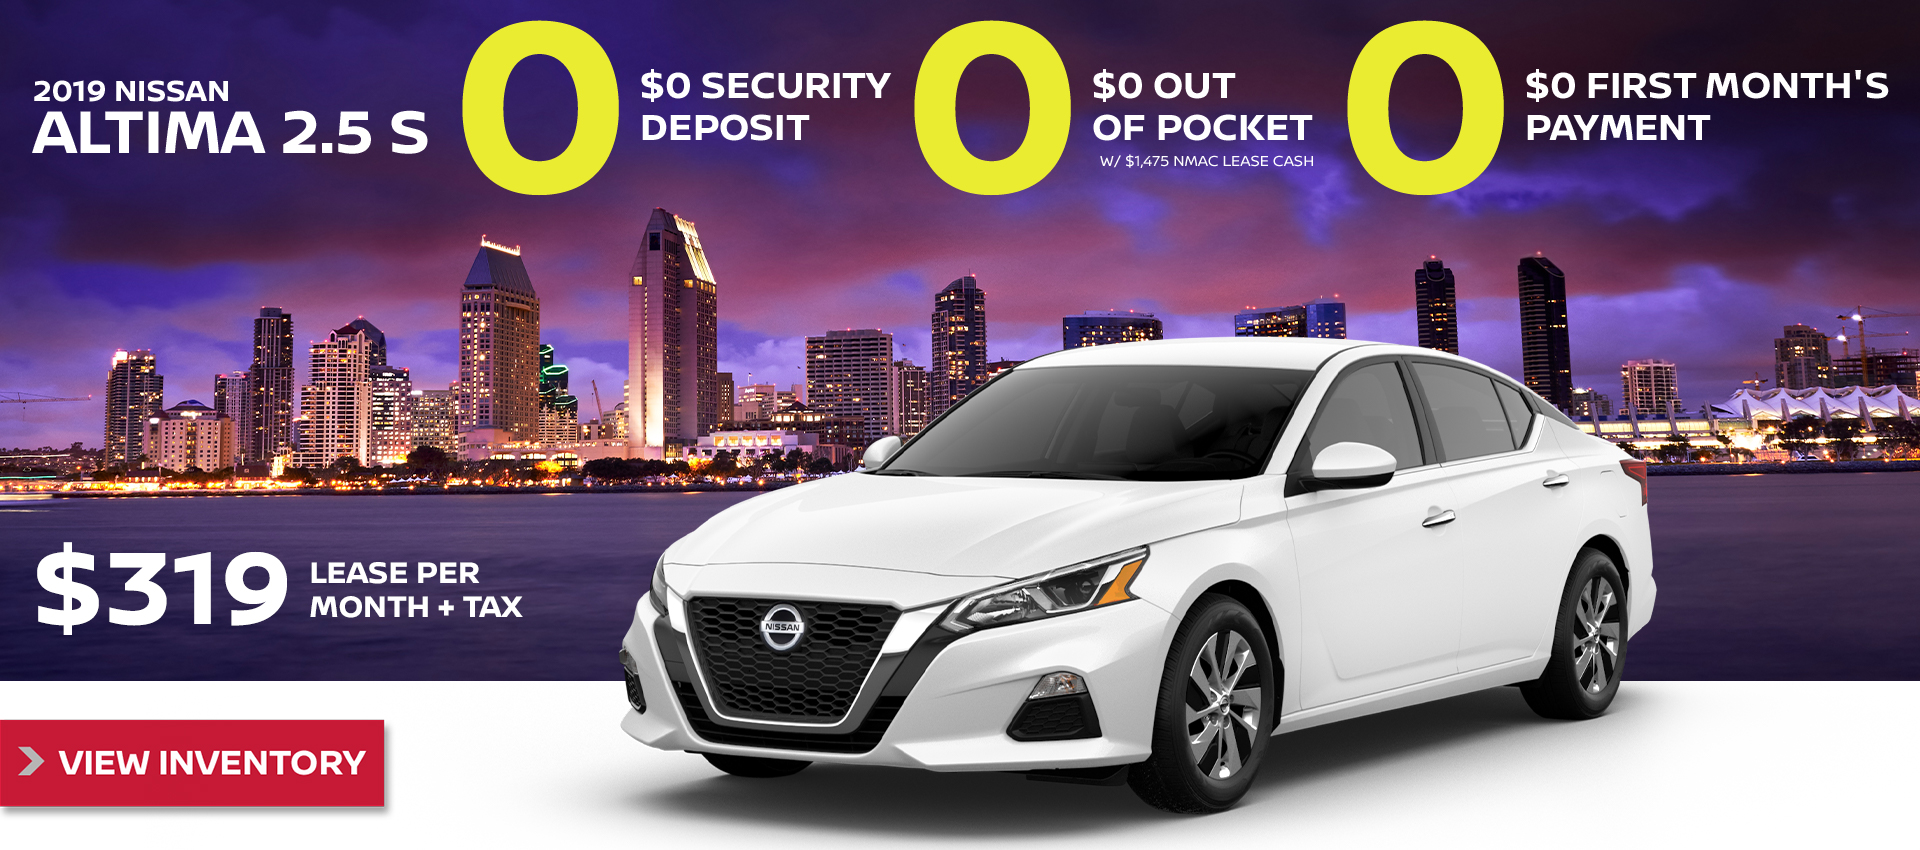 Mossy Nissan - Nissan Altima $319 Lease HP